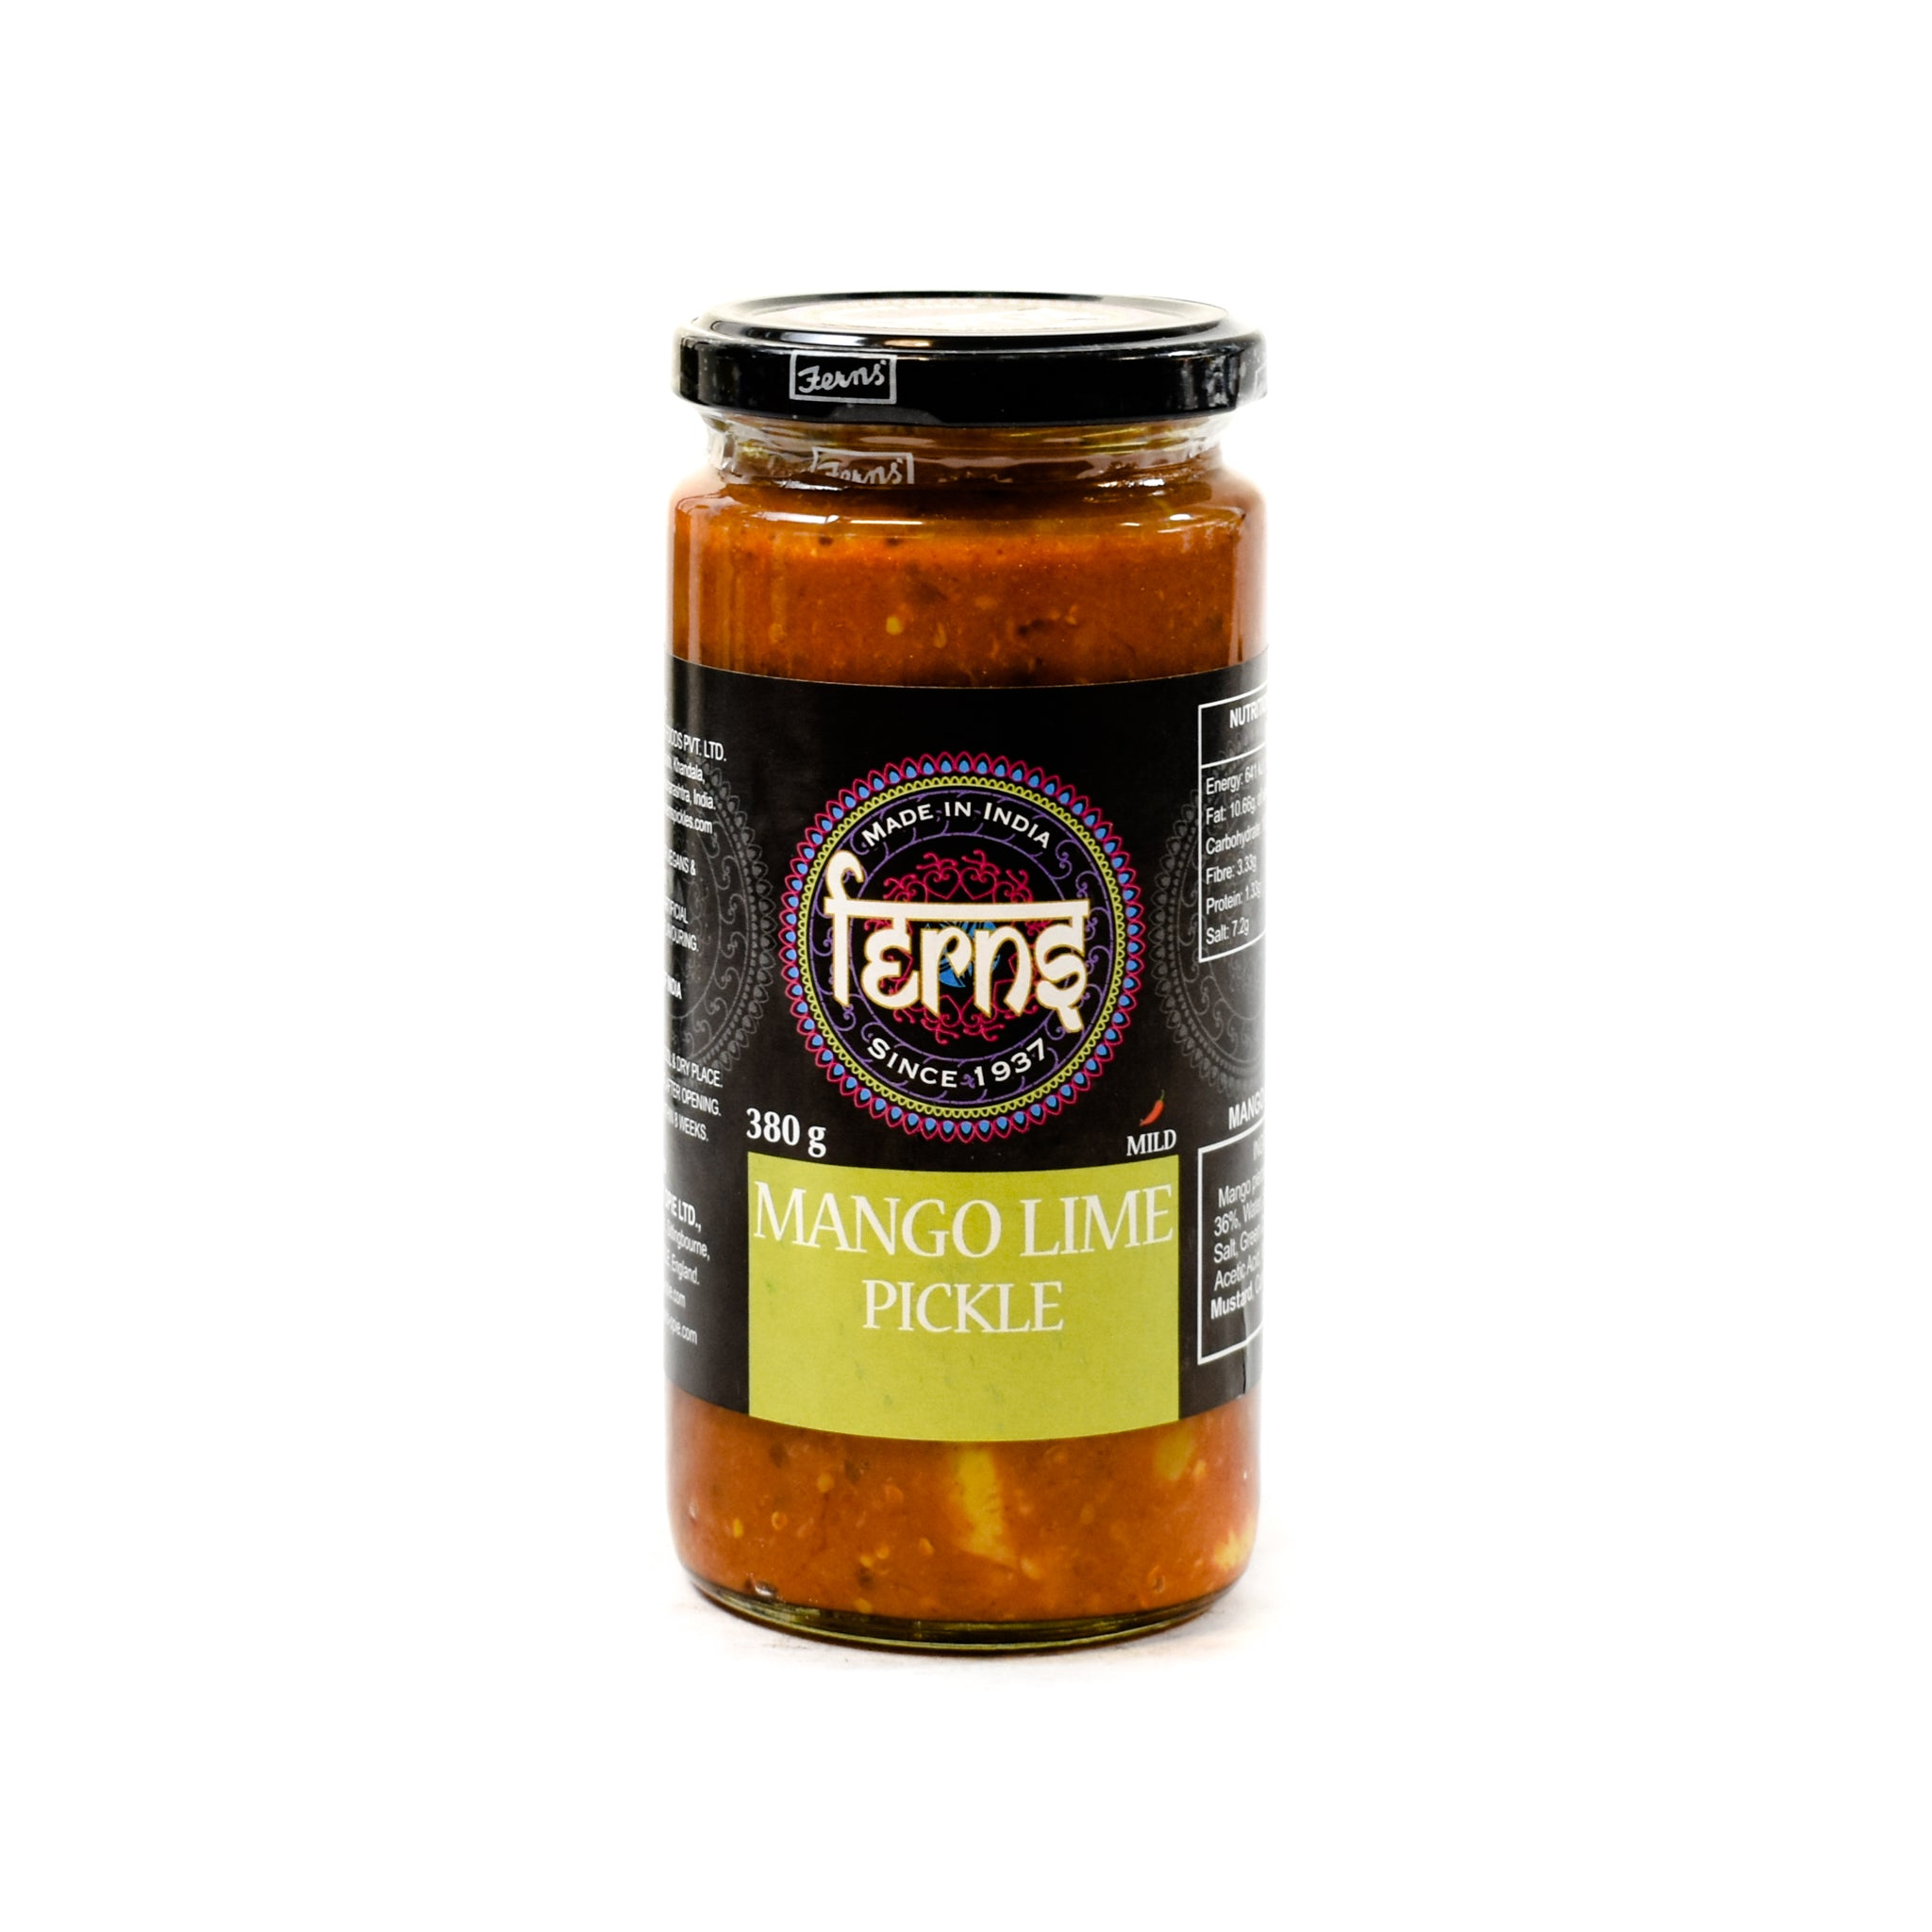 Ferns' Mango Lime Pickle 380g Ingredients Sauces & Condiments Asian Sauces & Condiments Indian Food